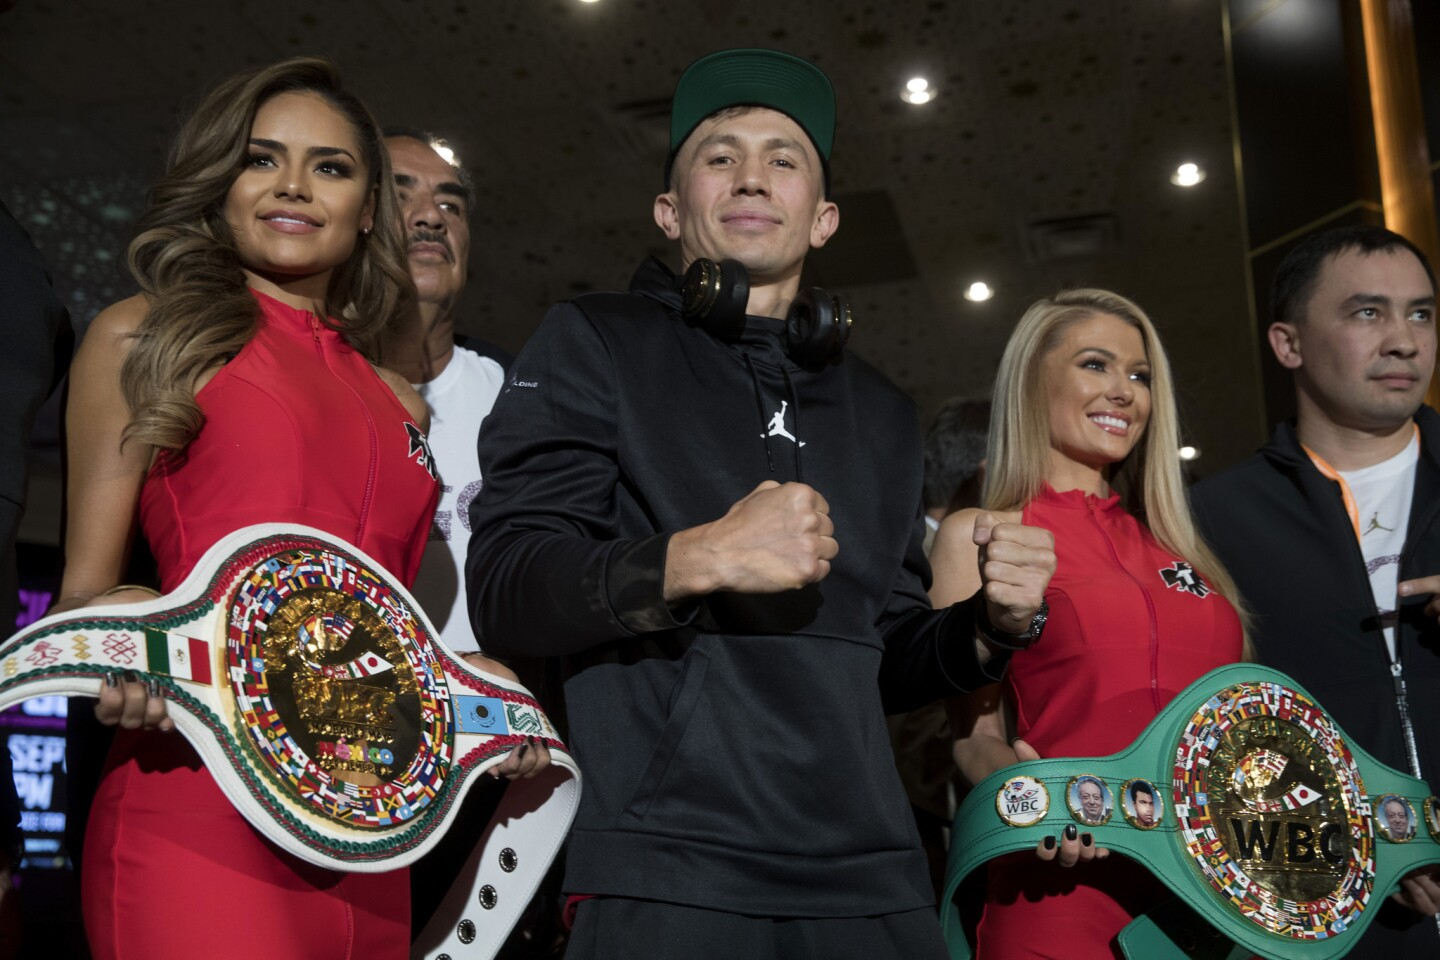 WBC/WBA middleweight champion Gennady Golovkin, center, of Kazakhstan poses in the lobby of the MGM Grand hotel-casino in Las Vegas Tuesday, Sept. 11, 2018. Golovkin will defend his titles against Canelo Alvarez of Mexico in a rematch at T-Mobile Arena in Las Vegas on Sept. 15. (Steve Marcus/Las Vegas Sun via AP)